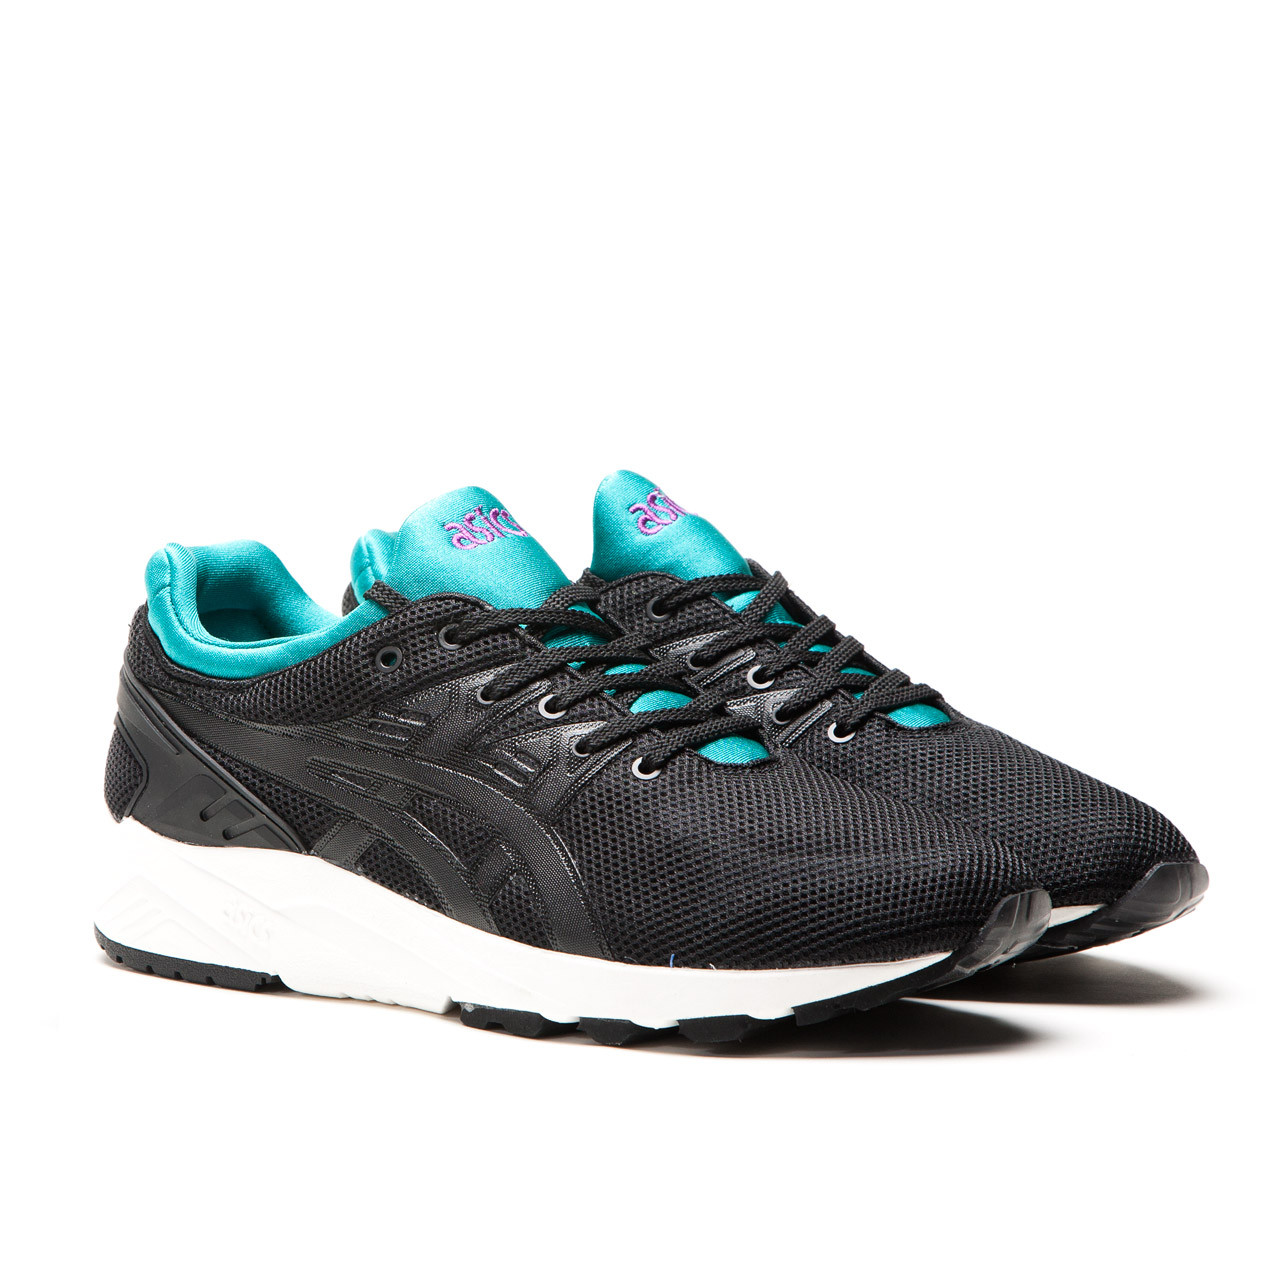 Asics Gel Kayano Asics Gel Kayano Trainer Evo Black H5y3n 9090